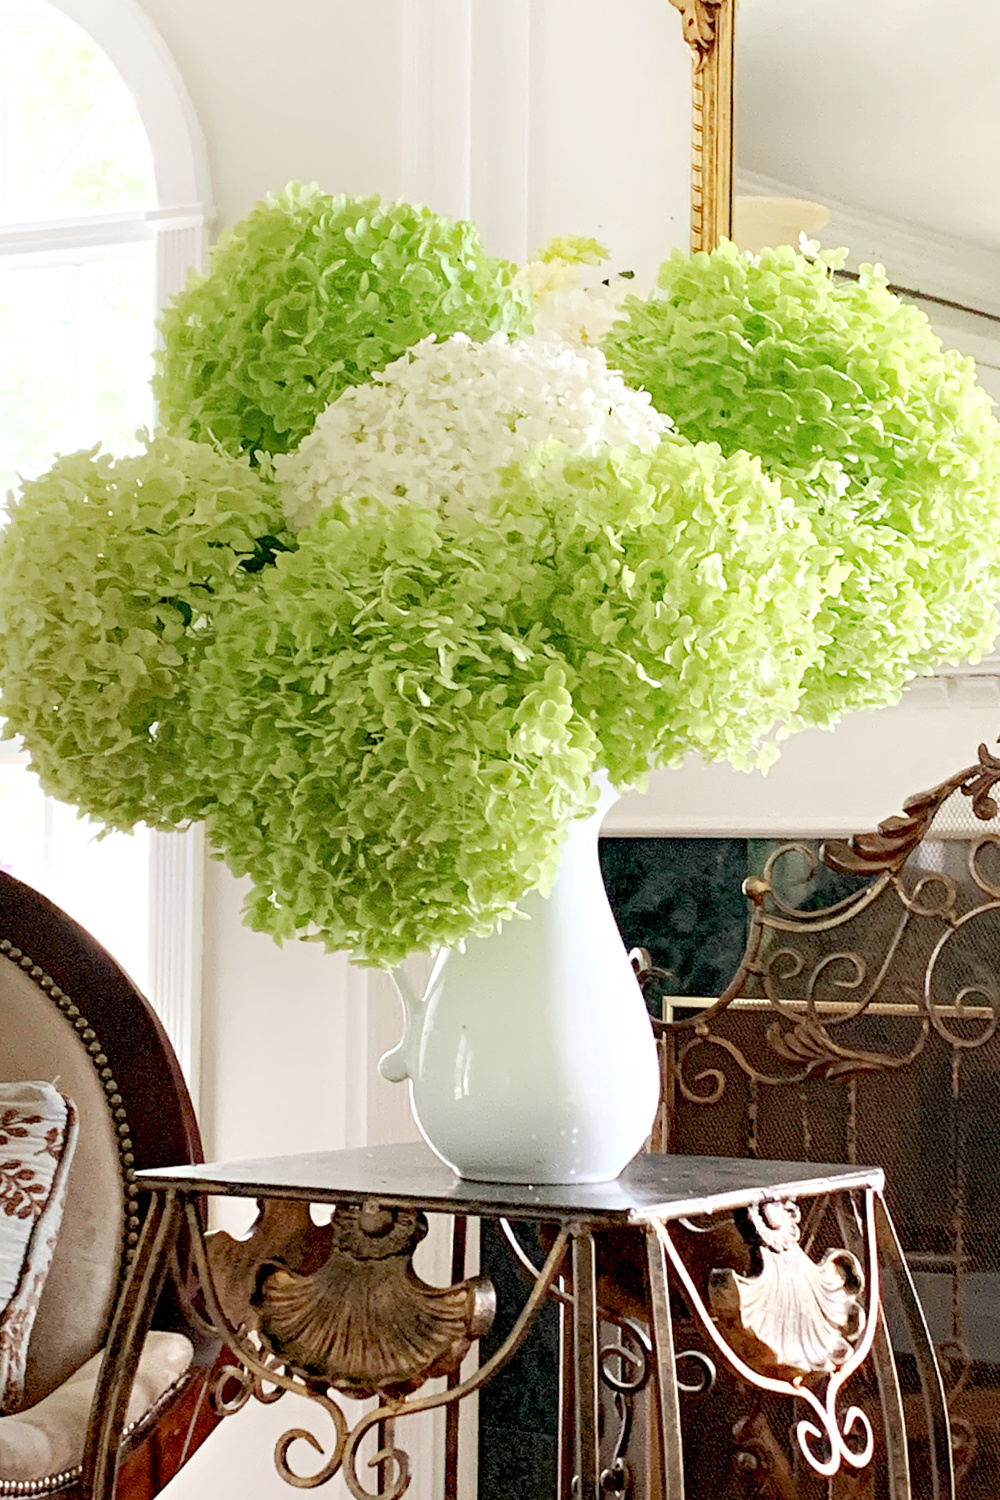 Giant white chartreuse green snowball hydrangea flowers broken after the rain storm